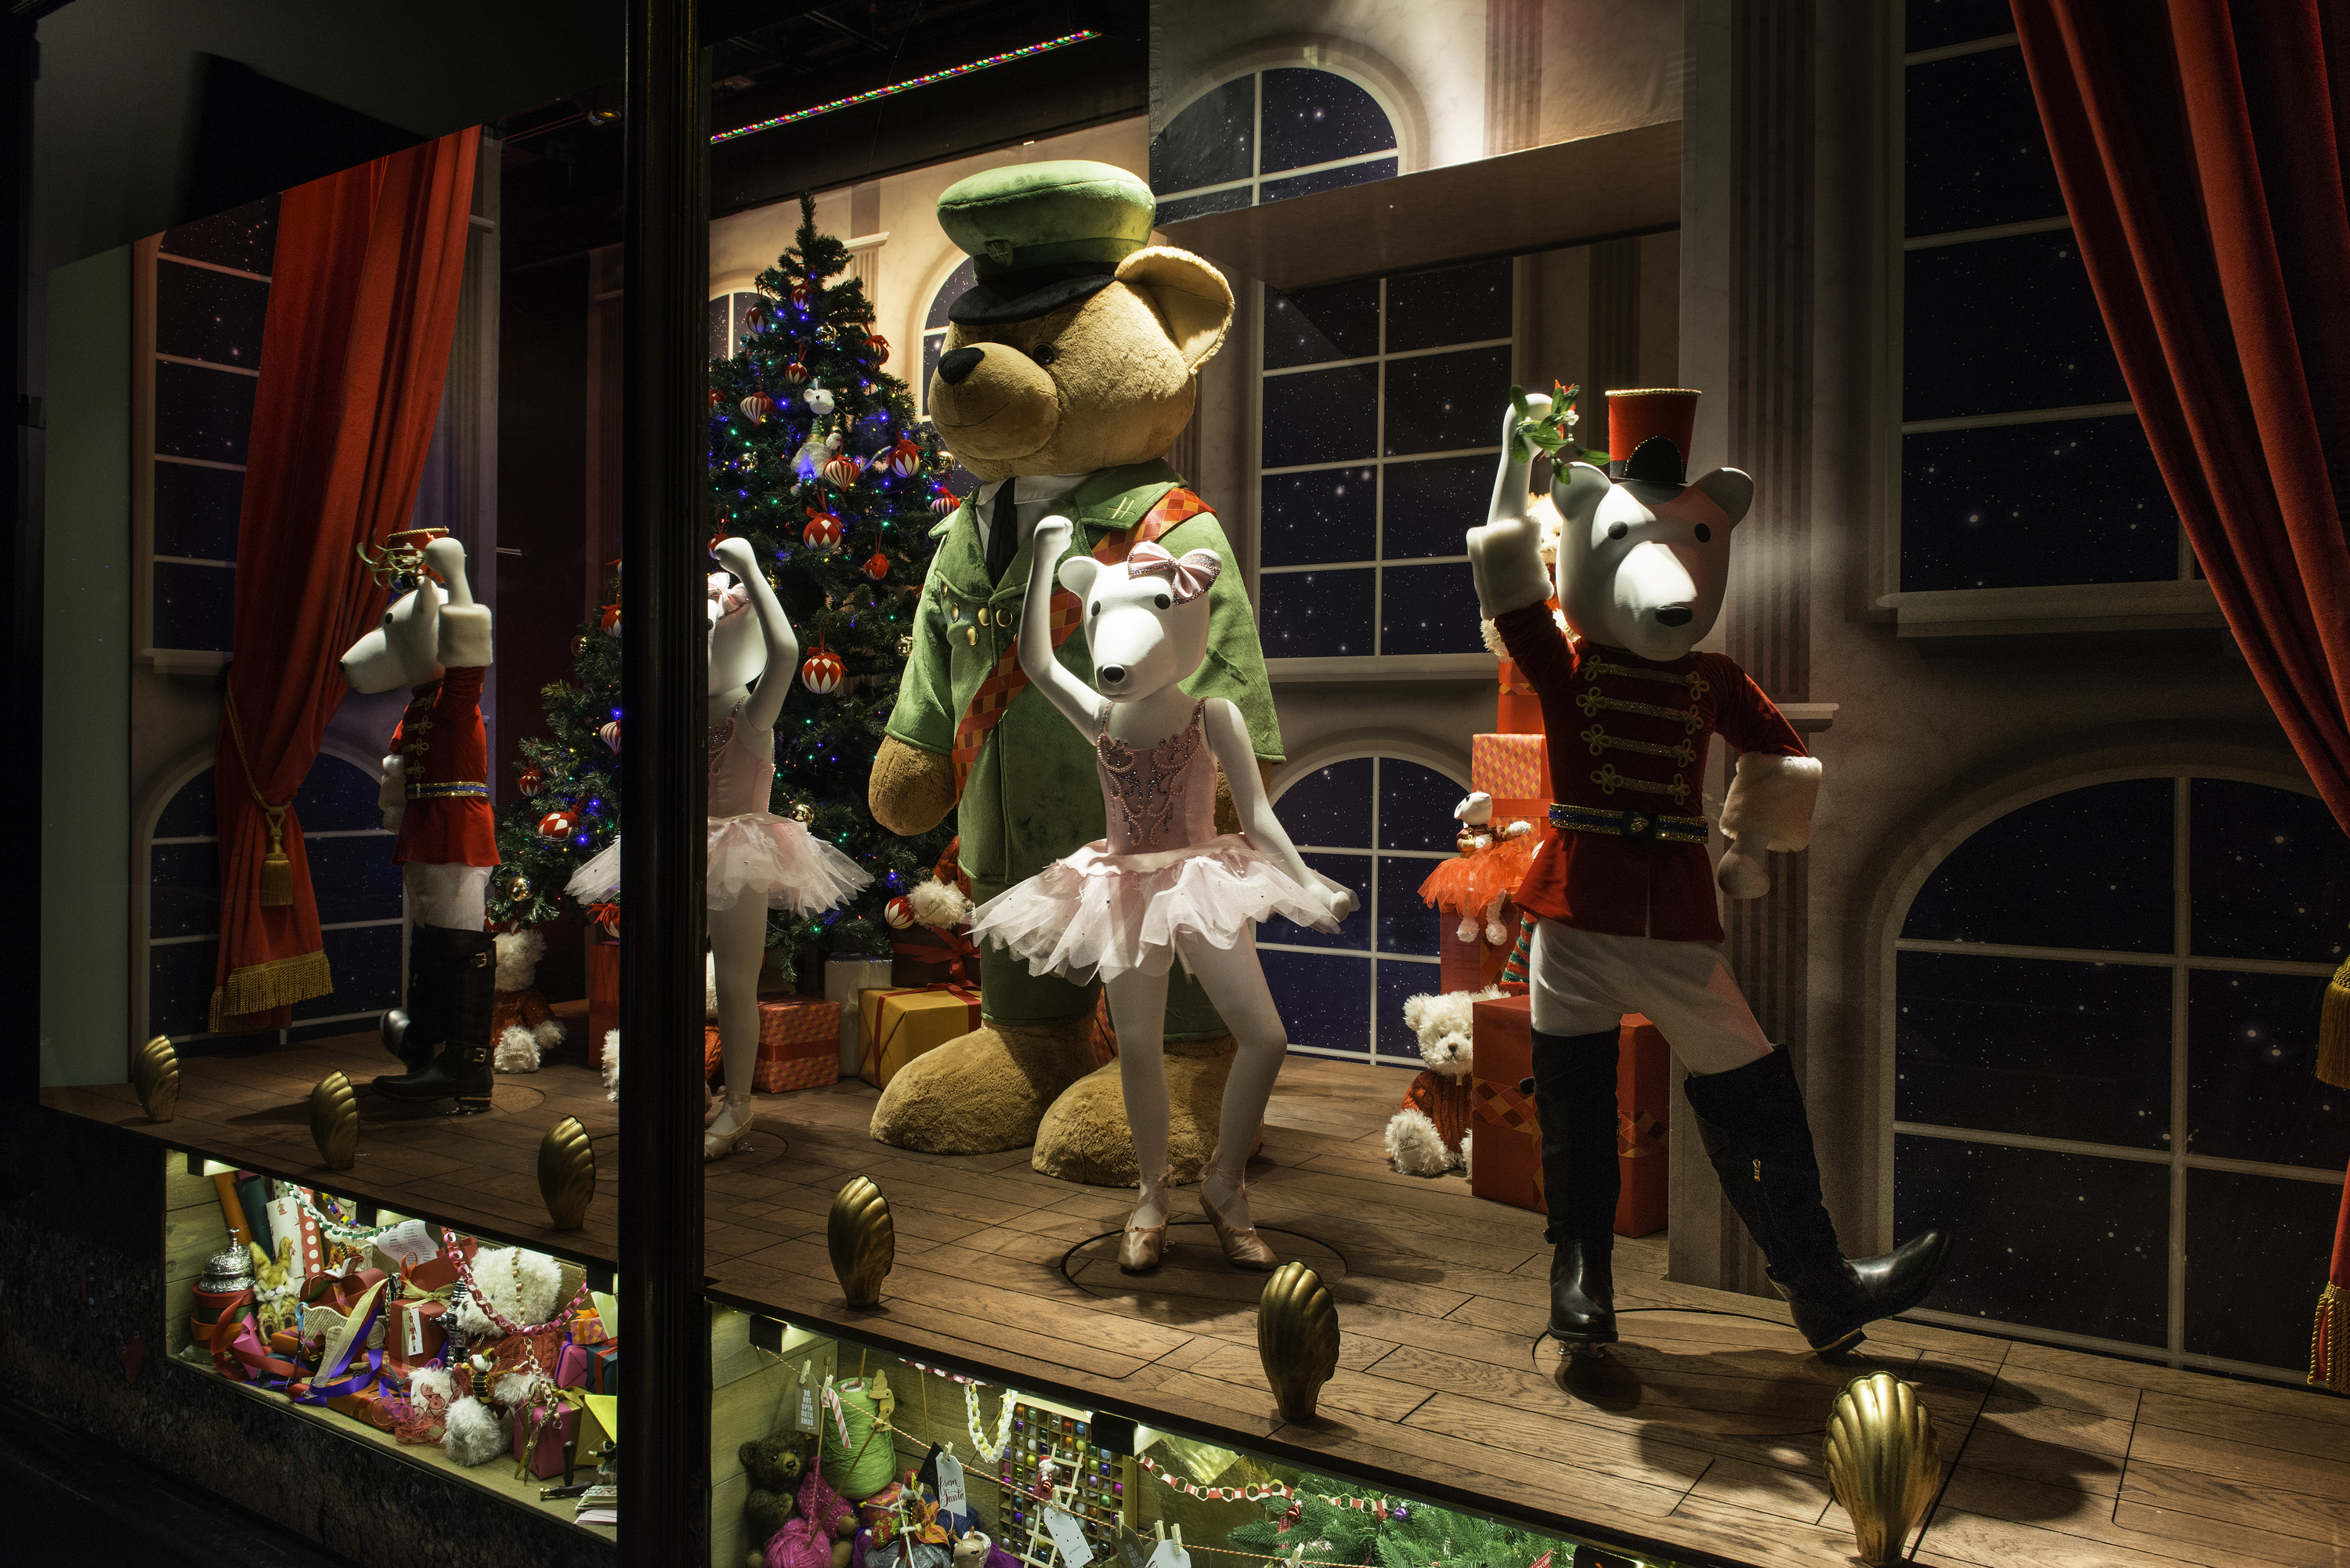 3d Moving Fireplace Wallpaper Harrods Christmas Windows Are Ready And Waiting